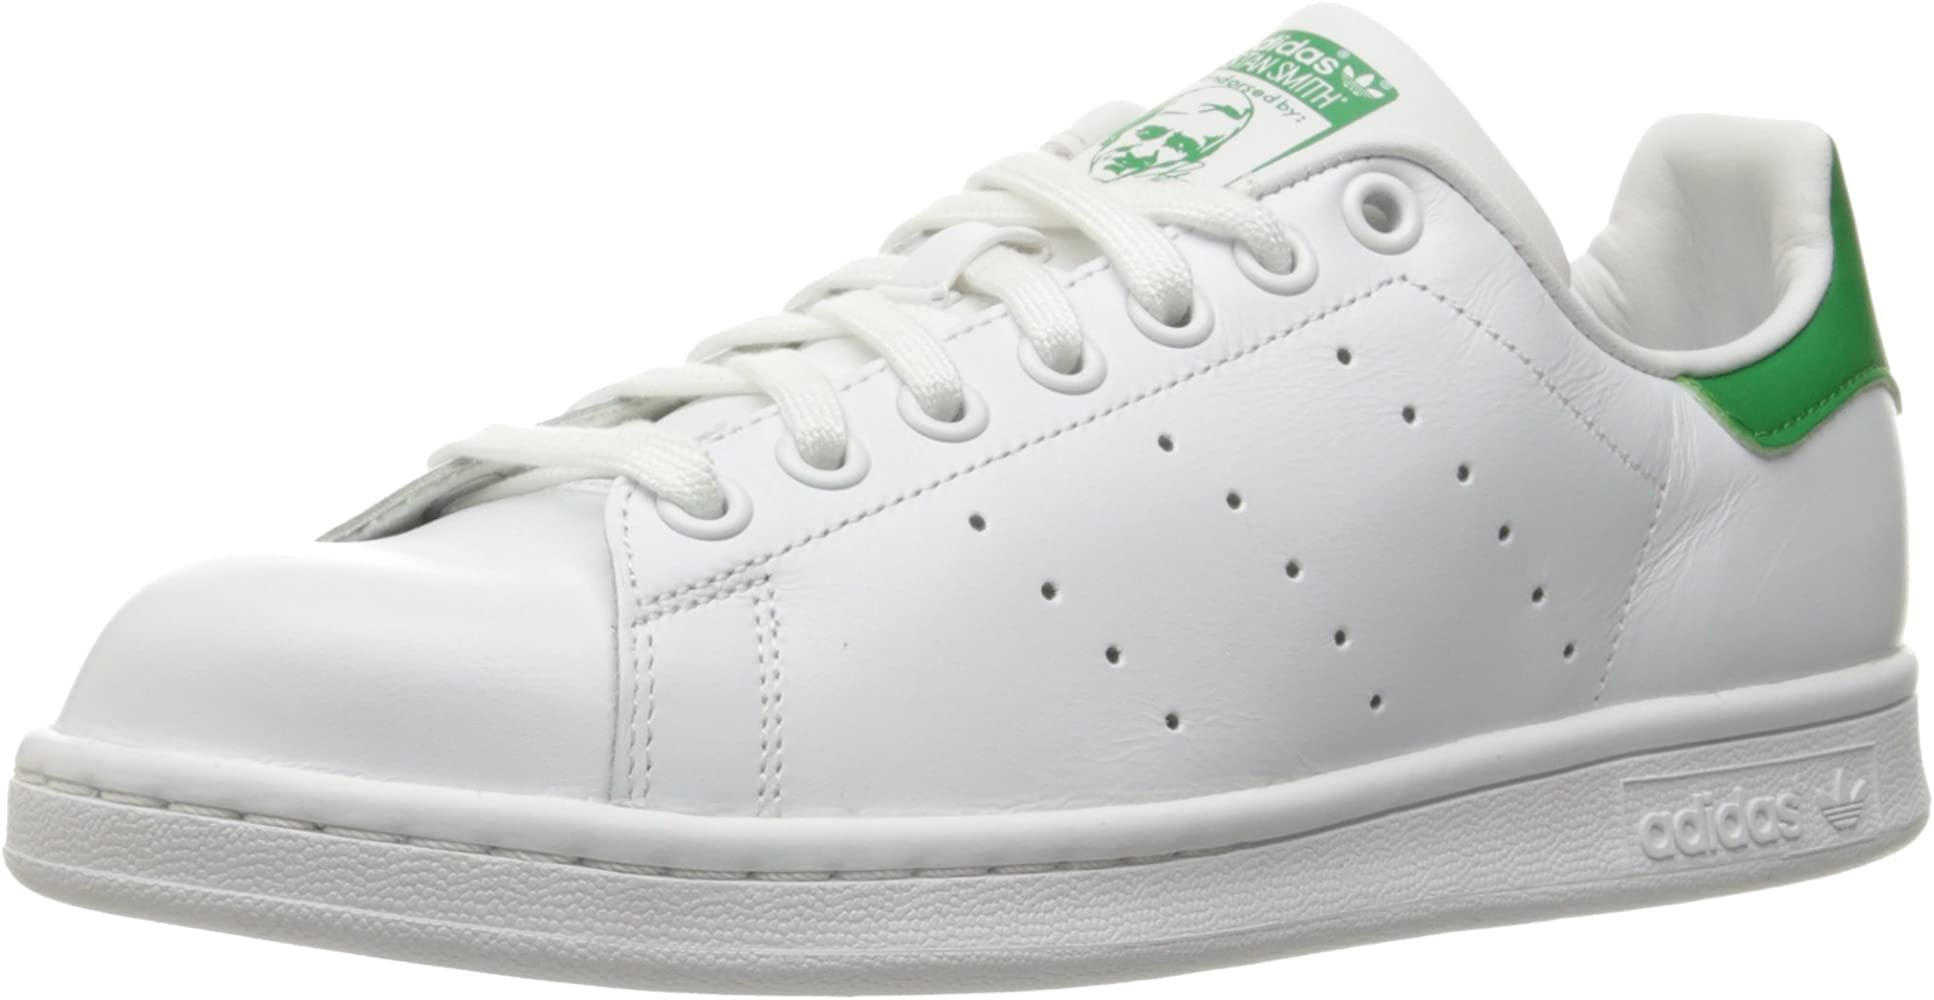 abd056506c adidas Originals Women's Stan Smith Shoe, Footwear White/Footwear ...